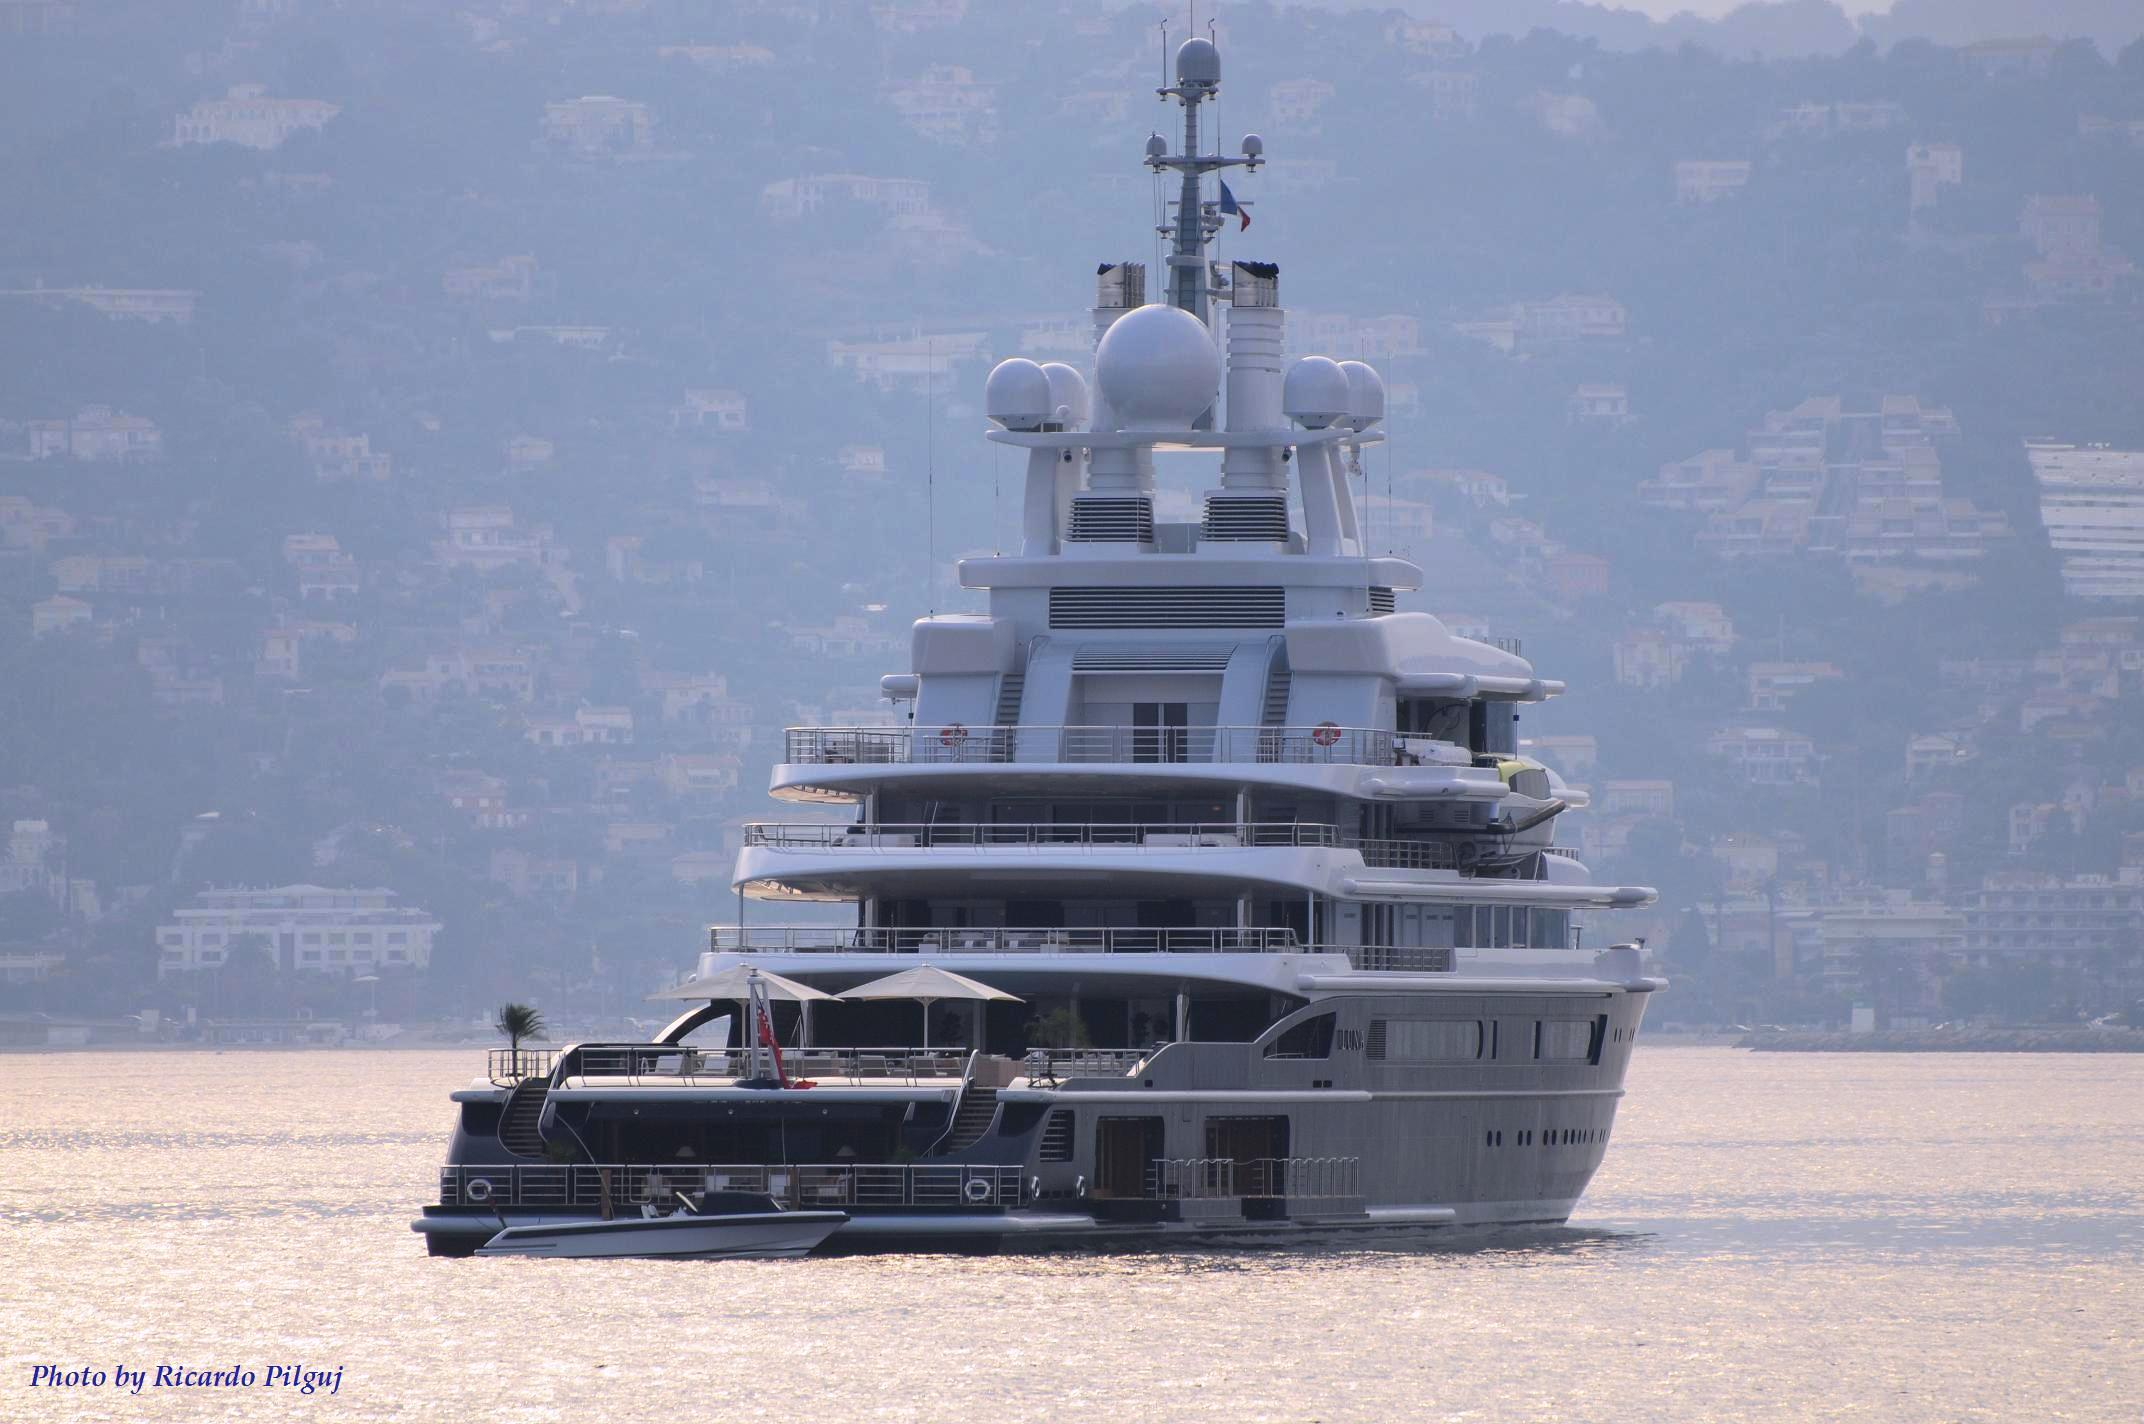 Yacht Luna soon after her delivery in the Mediterranean